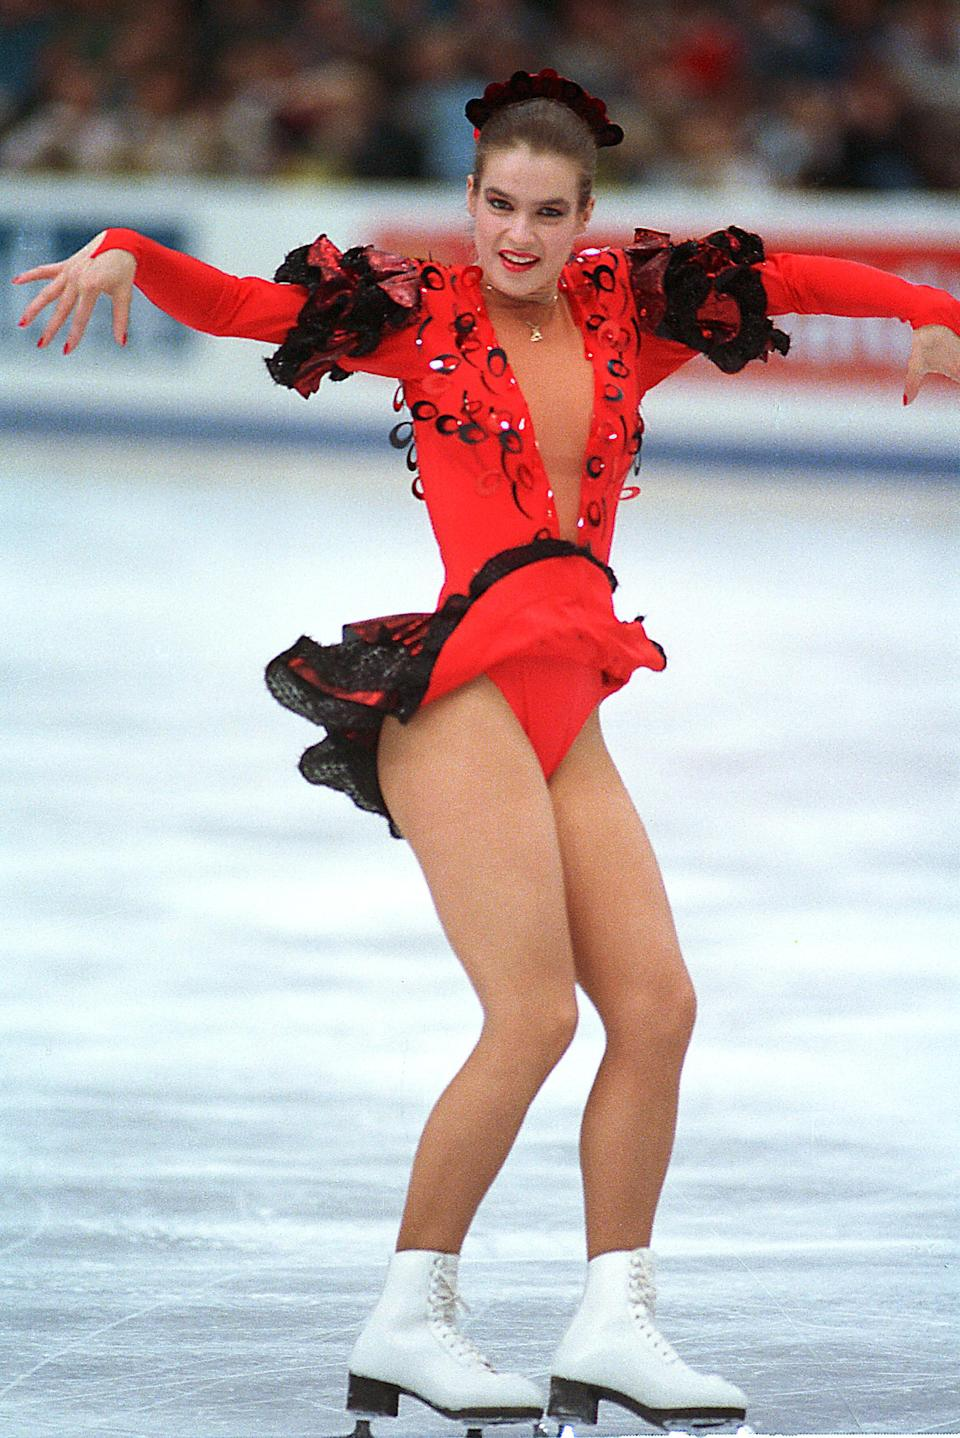 """<p>It was the """"Battle of the Carmens"""" at the Calgary Olympics and that showed in the skating costumes as well. German skater Katerina Witt won the gold medal and did so in a black and red flamenco-inspired dress complete with ruffles and extra frilly sleeves. </p>"""